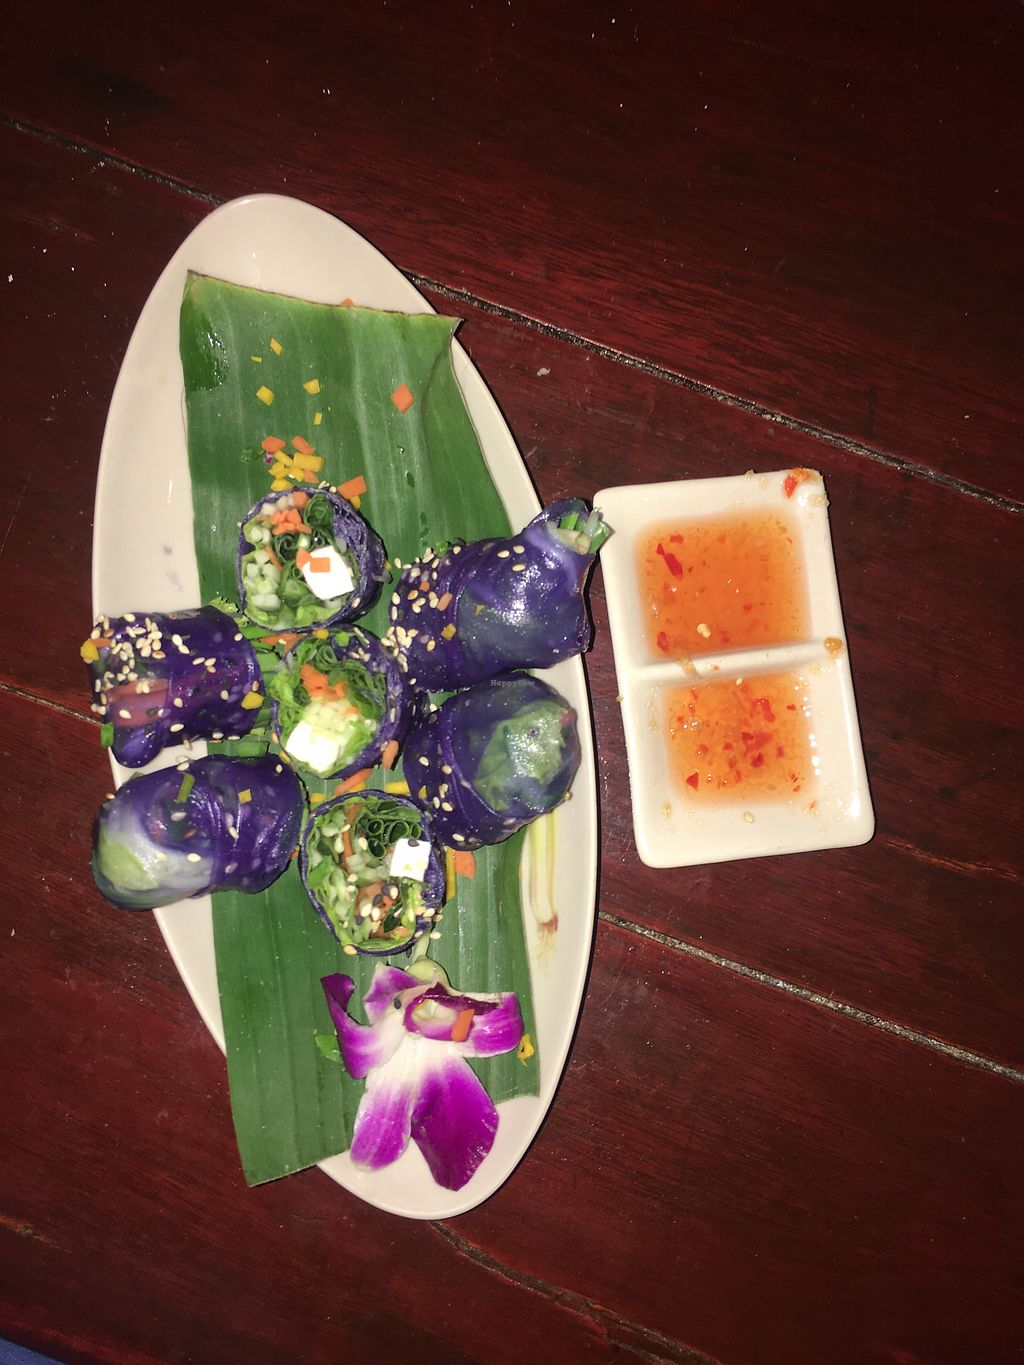 """Photo of Blue Lagoon  by <a href=""""/members/profile/VeraP.V."""">VeraP.V.</a> <br/>Best fresh spring rolls with tofu! No noodless, only vegetable and tofu, great! <br/> January 3, 2018  - <a href='/contact/abuse/image/89292/342611'>Report</a>"""